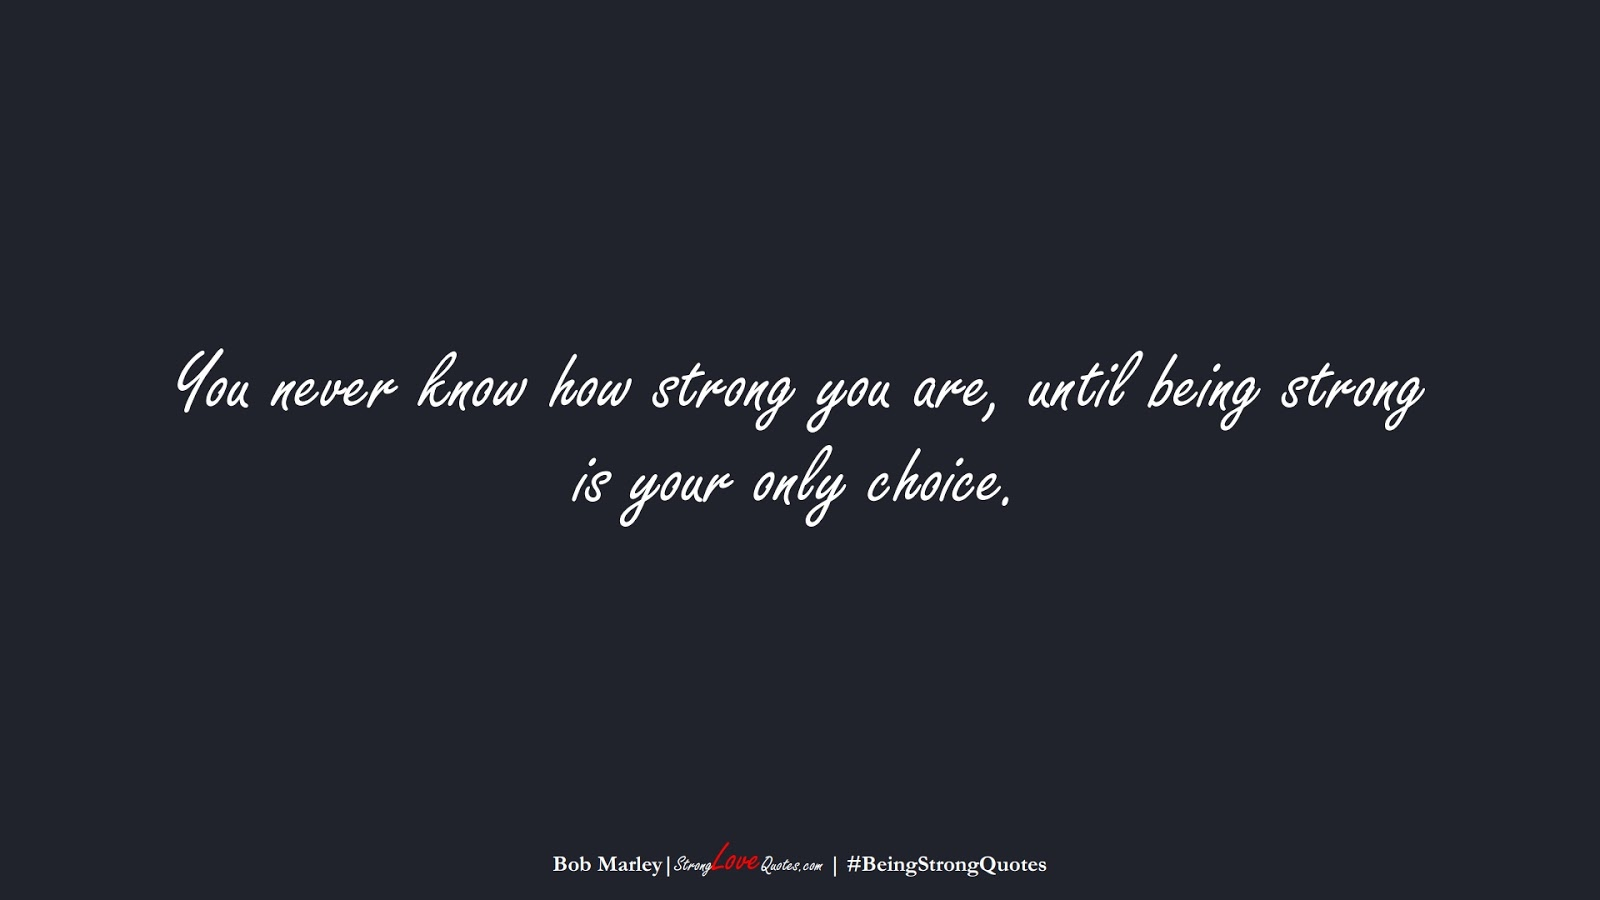 You never know how strong you are, until being strong is your only choice. (Bob Marley);  #BeingStrongQuotes